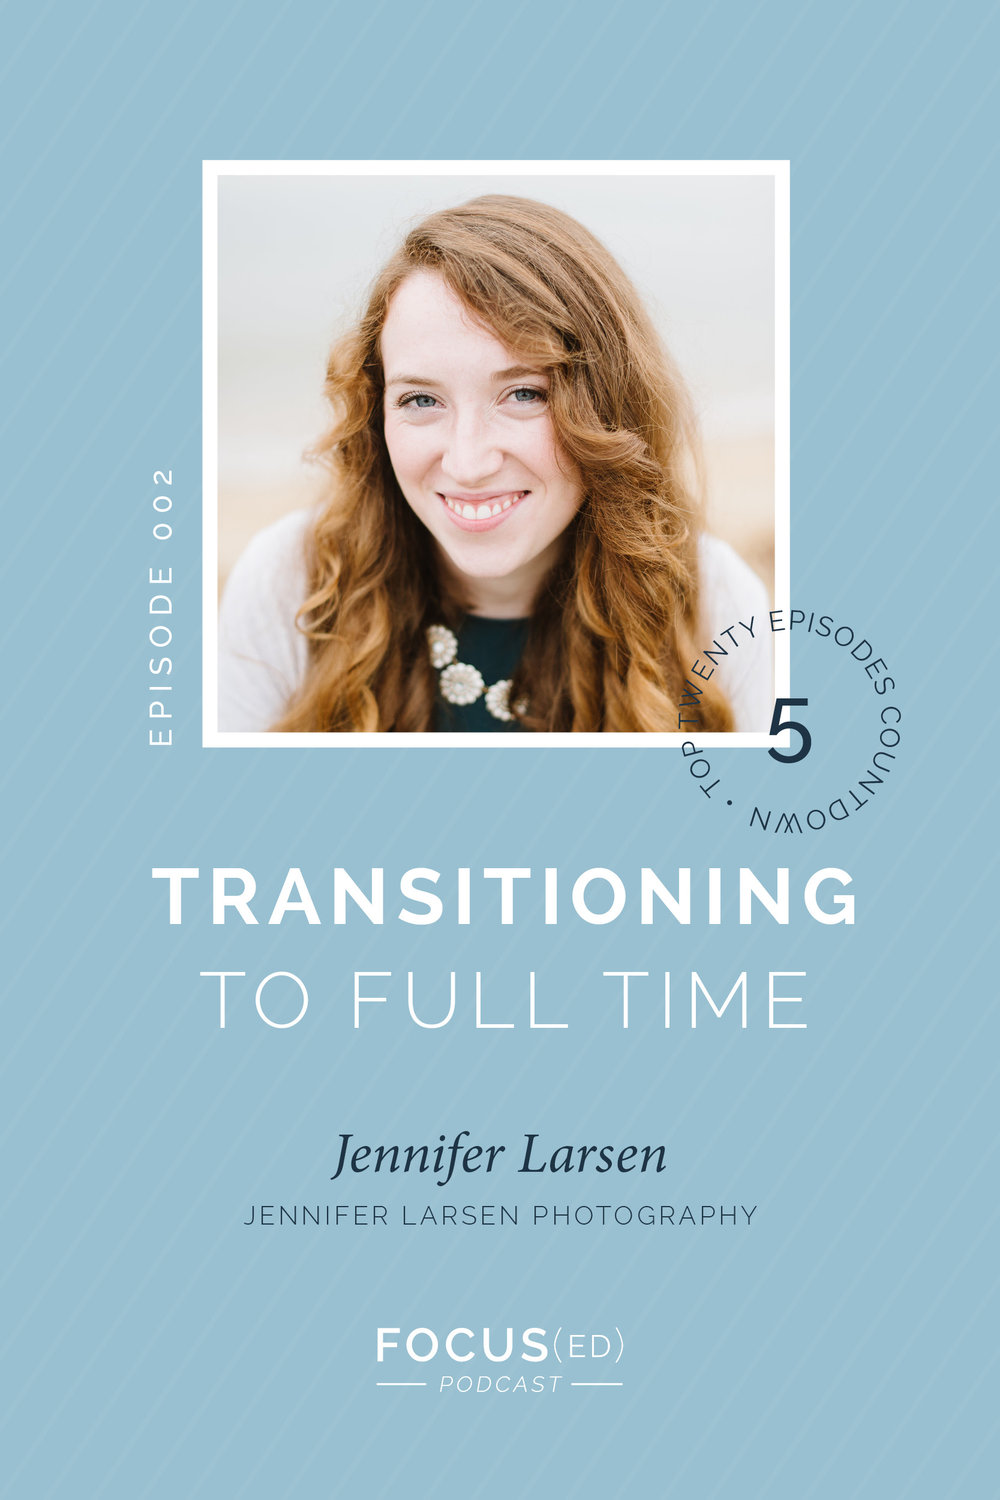 Focused Podcast: Jennifer Larsen, Transitioning your business to full time